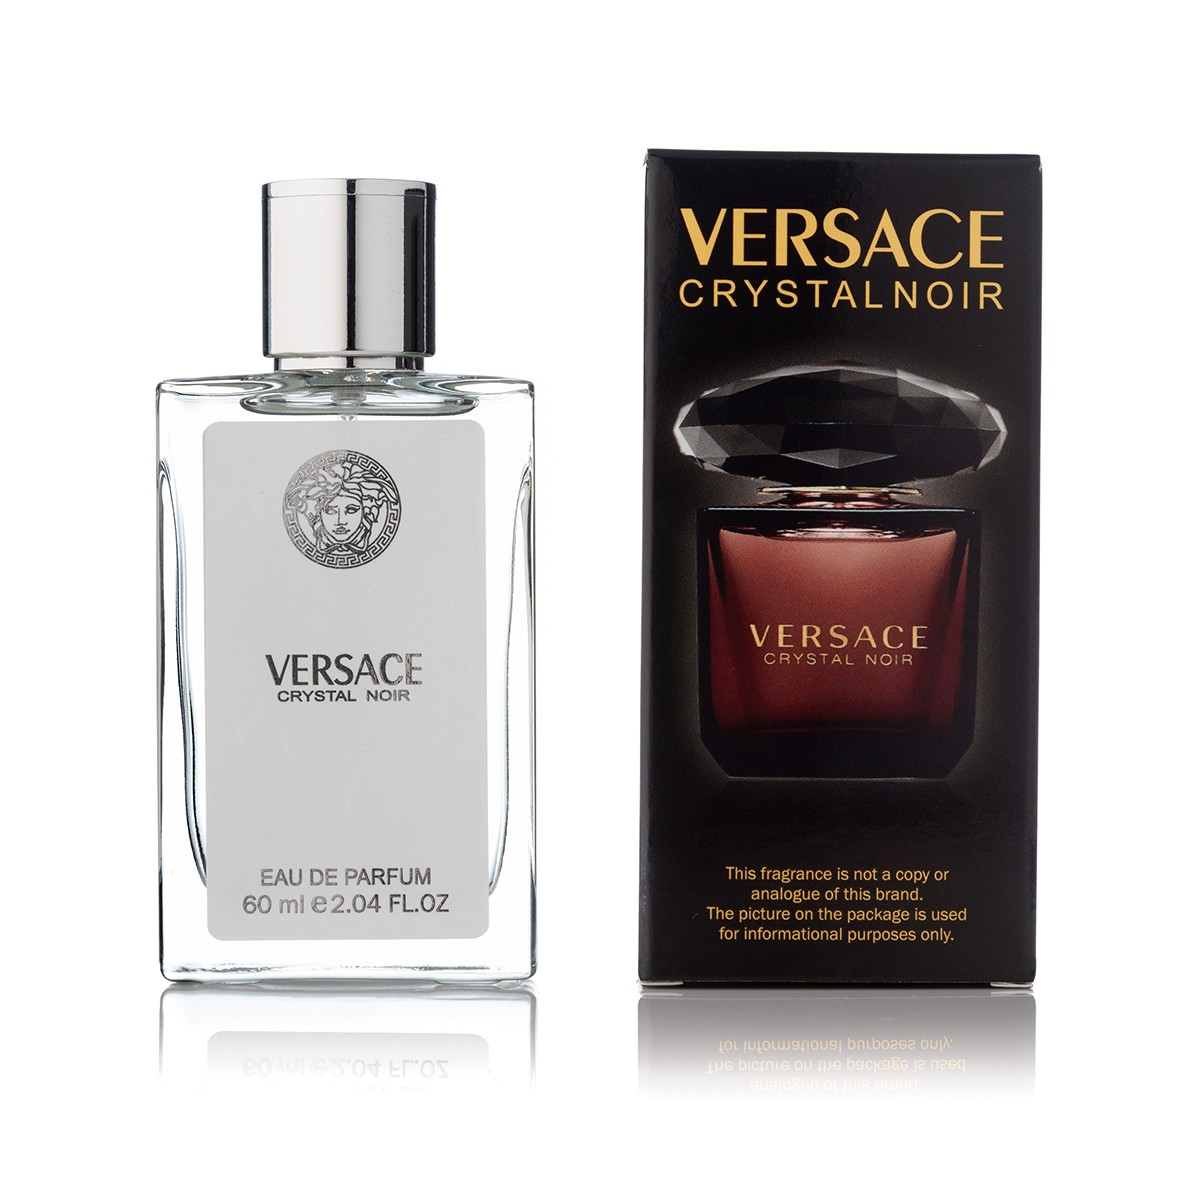 Versace Crystal Noir edp 60 ml tester color box